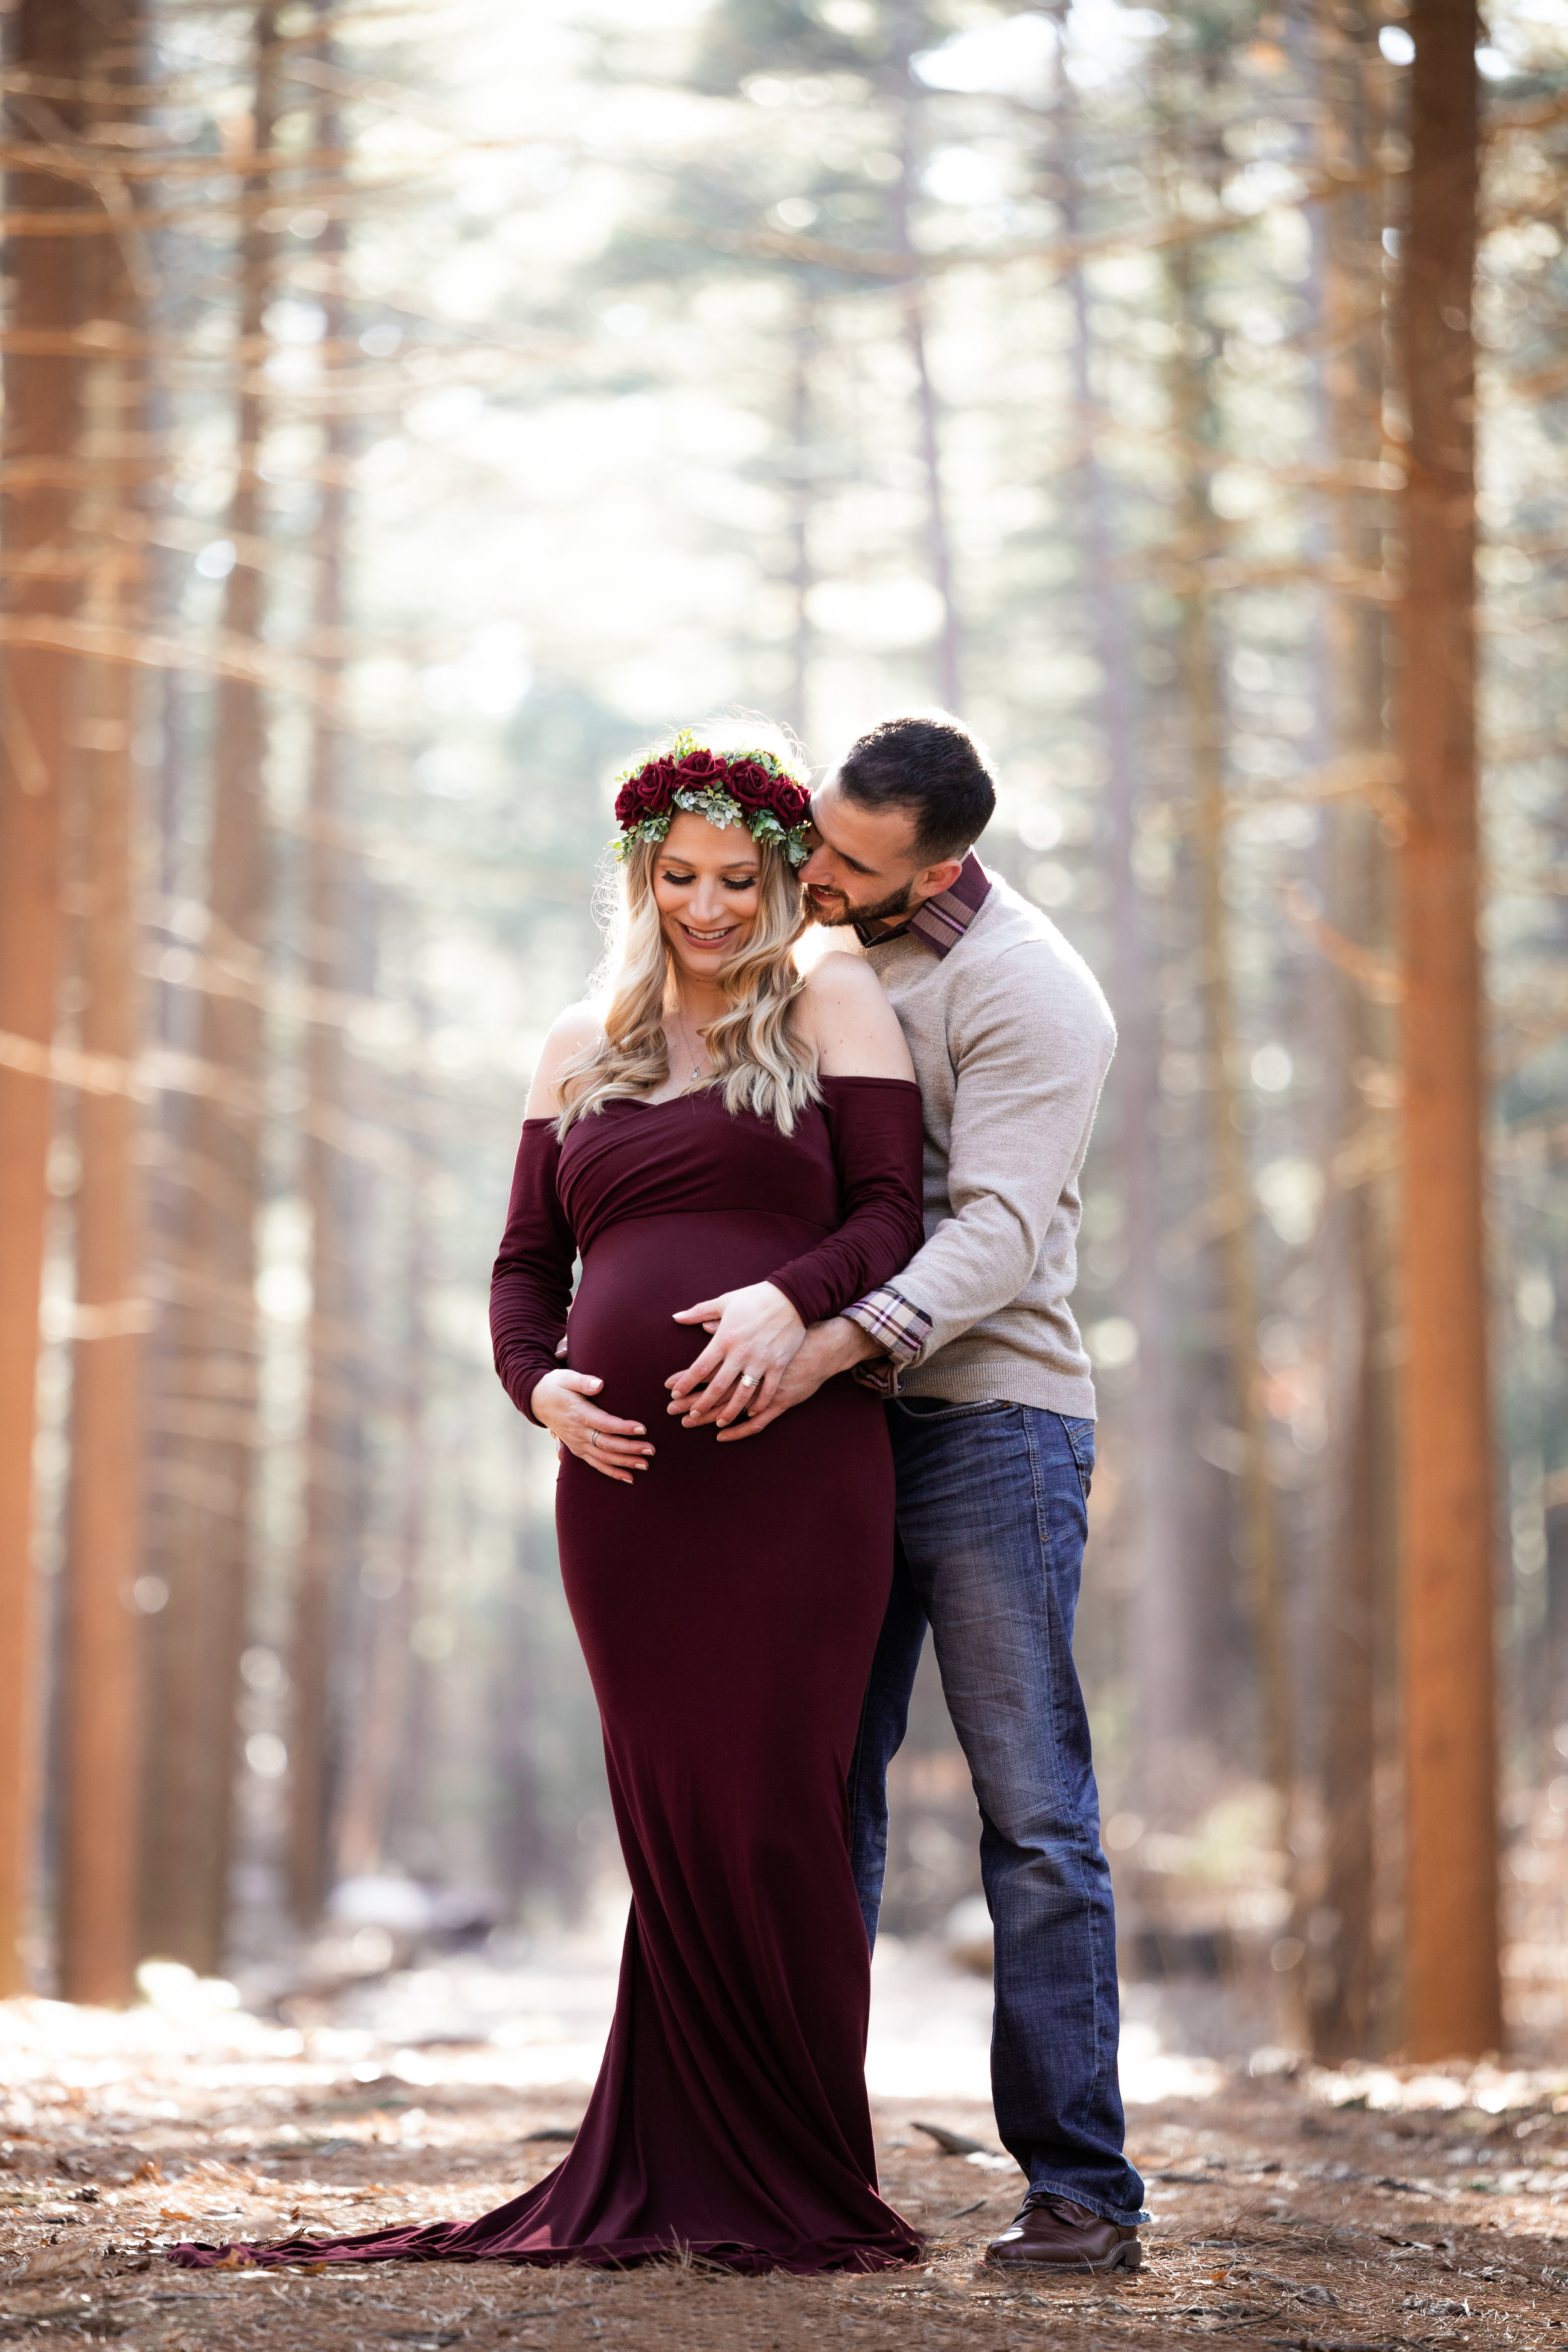 2019-01-26 - Briana & Anthony - Maternity Photos-125.jpg